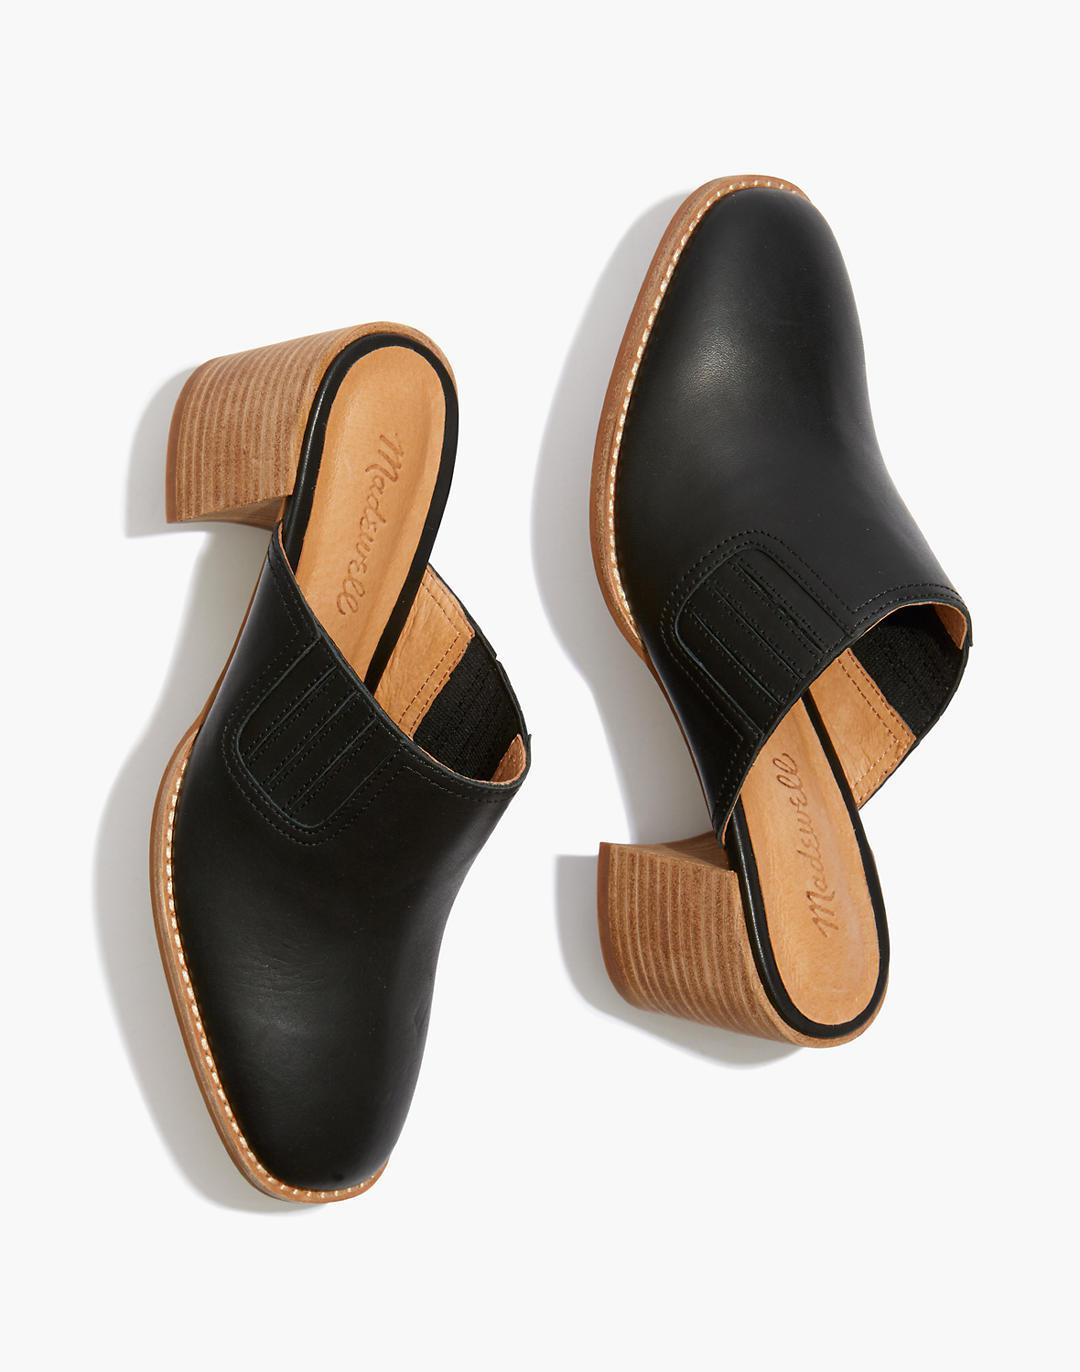 The Carey Mule in Leather